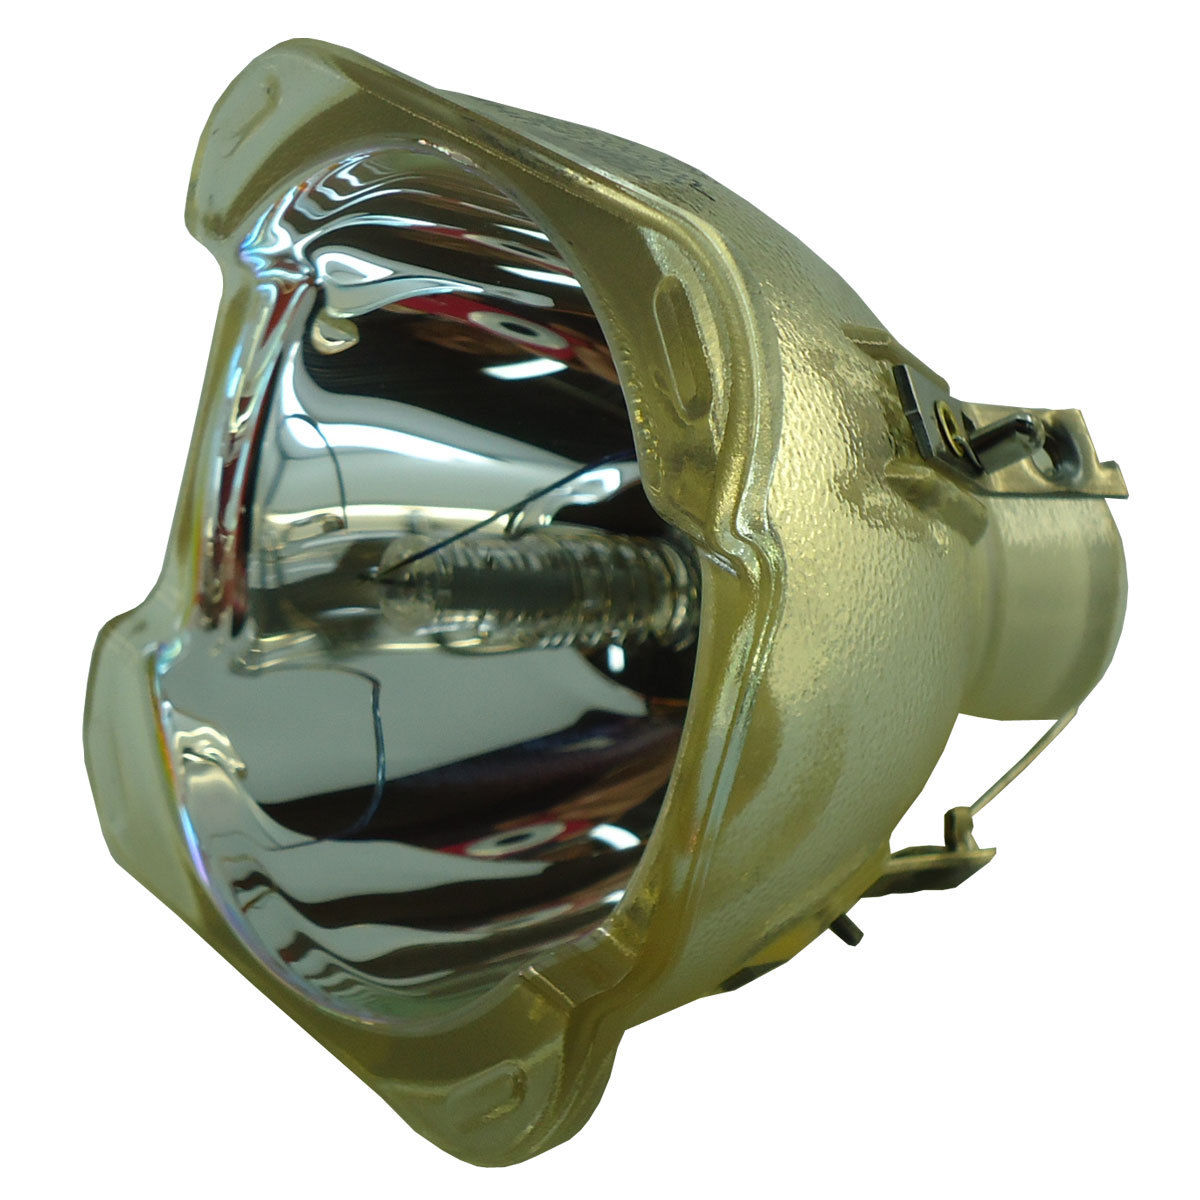 Compatible Bare Bulb 5J.J0405.001 for BENQ MP776ST MP776 MP777 Projector Lamp Bulb without housing compatible bare projector lamp bulb 5j j2n05 011 for benq sp840